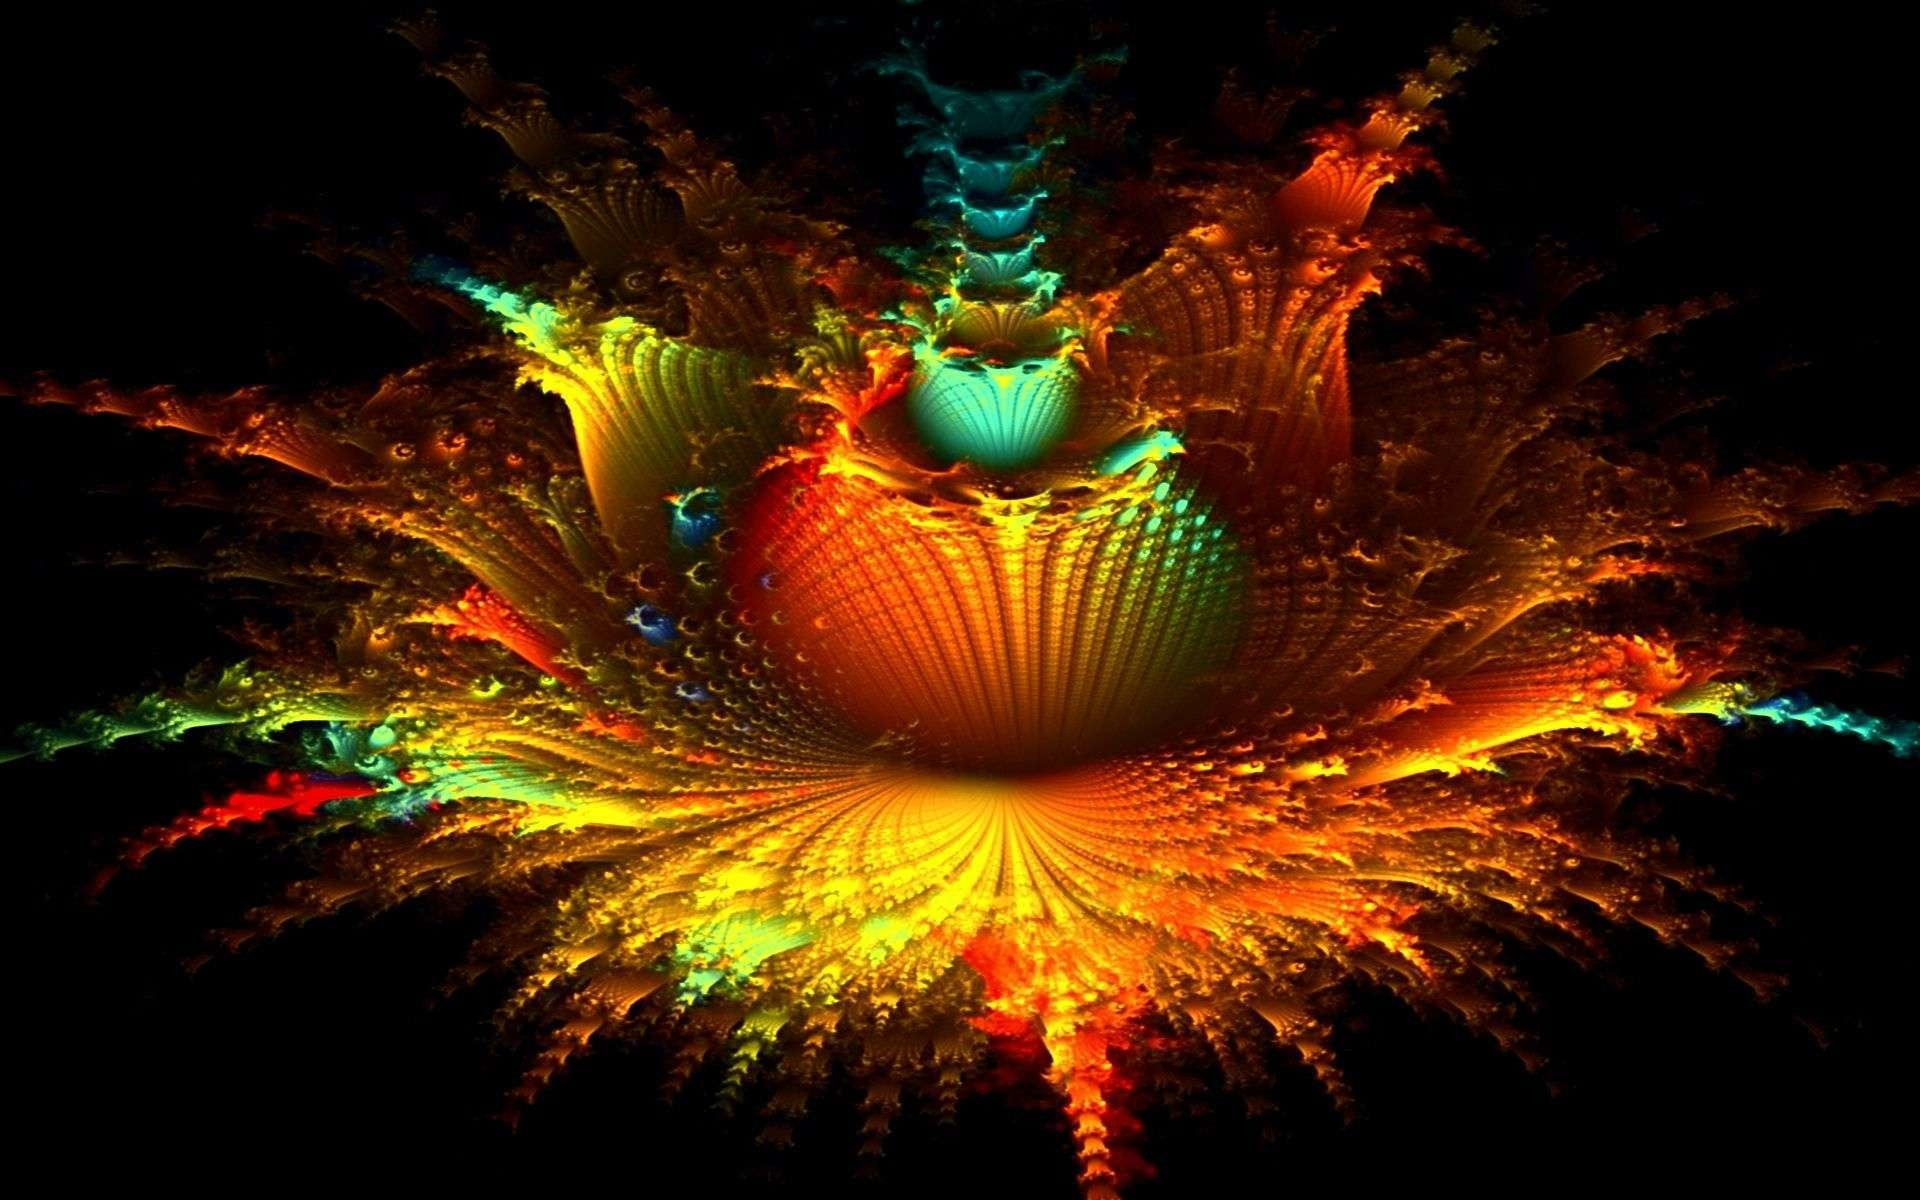 Abstract HD Wallpapers : Find best latest Abstract HD Wallpapers in HD for  your PC desktop background & mobile phones.